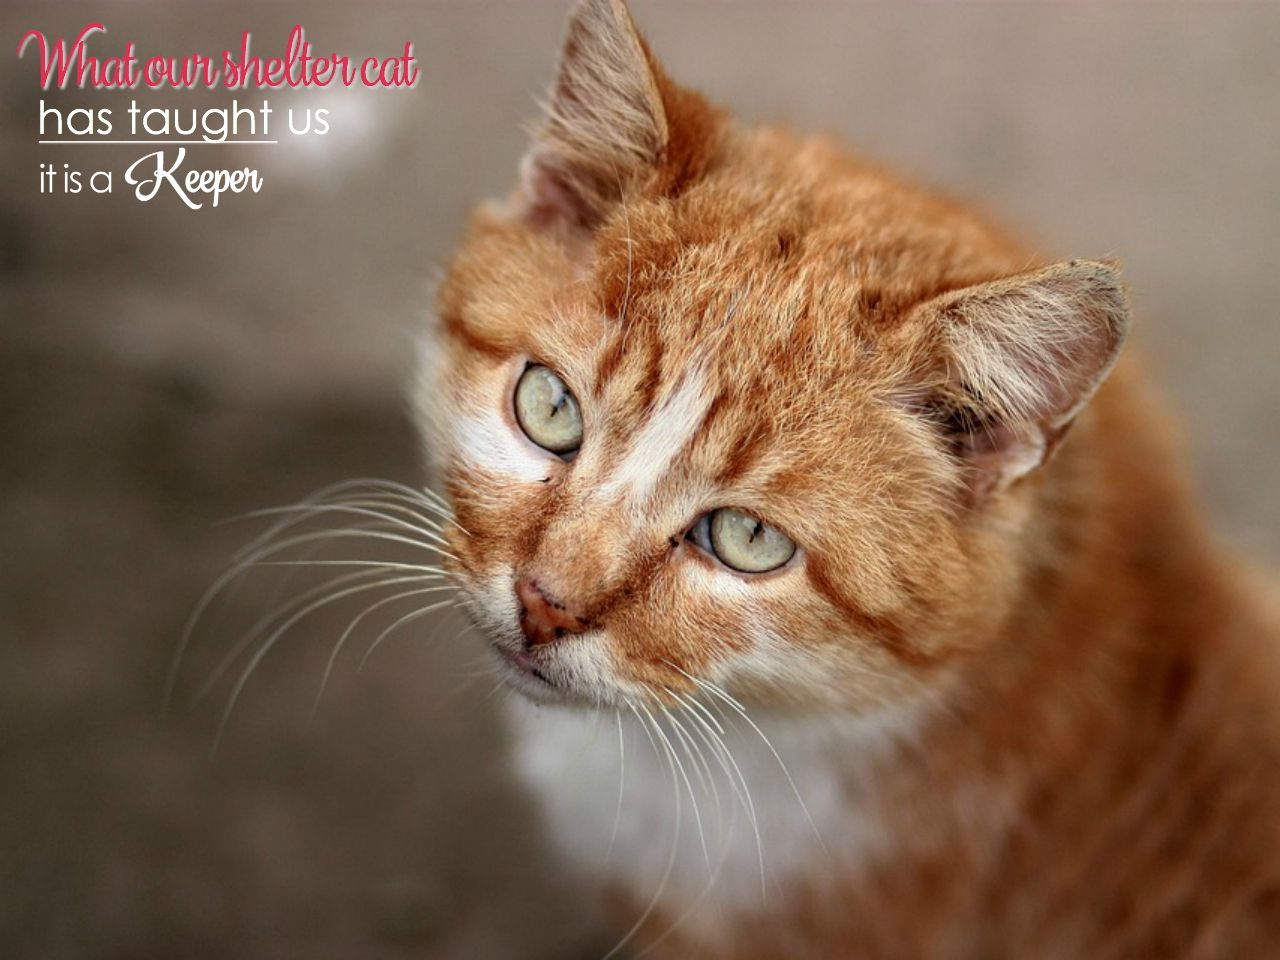 Lessons from Jack What our Shelter Cat Has Taught Us